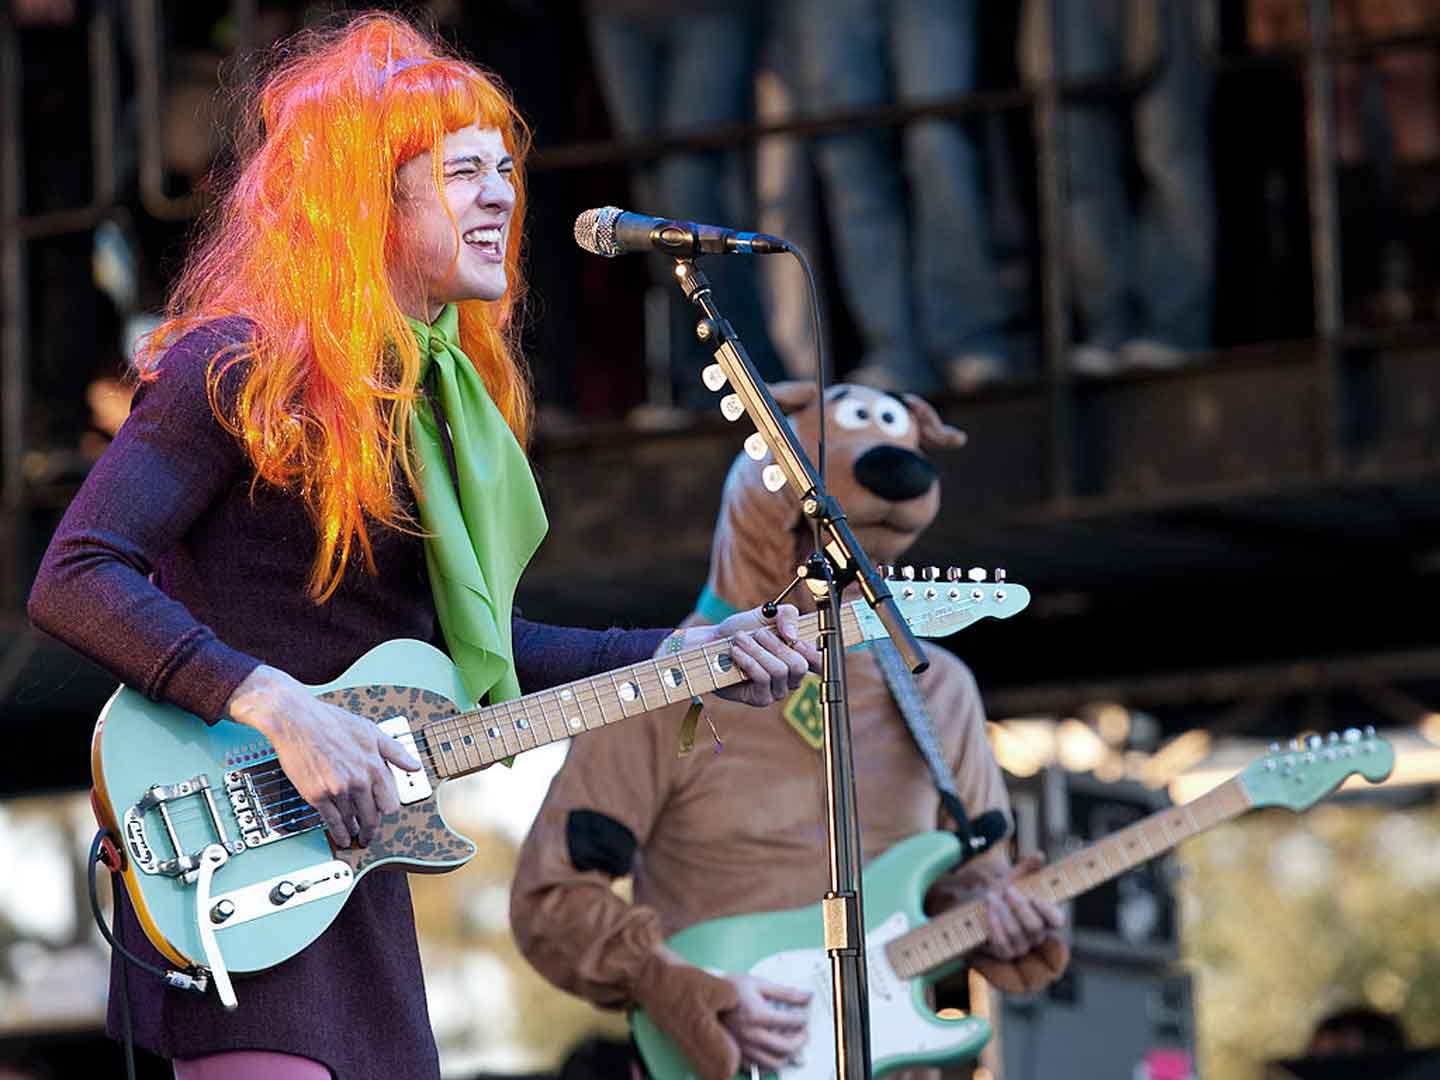 MGMT performing at Voodoo Fest 2010 dressed as characters from Scooby Doo